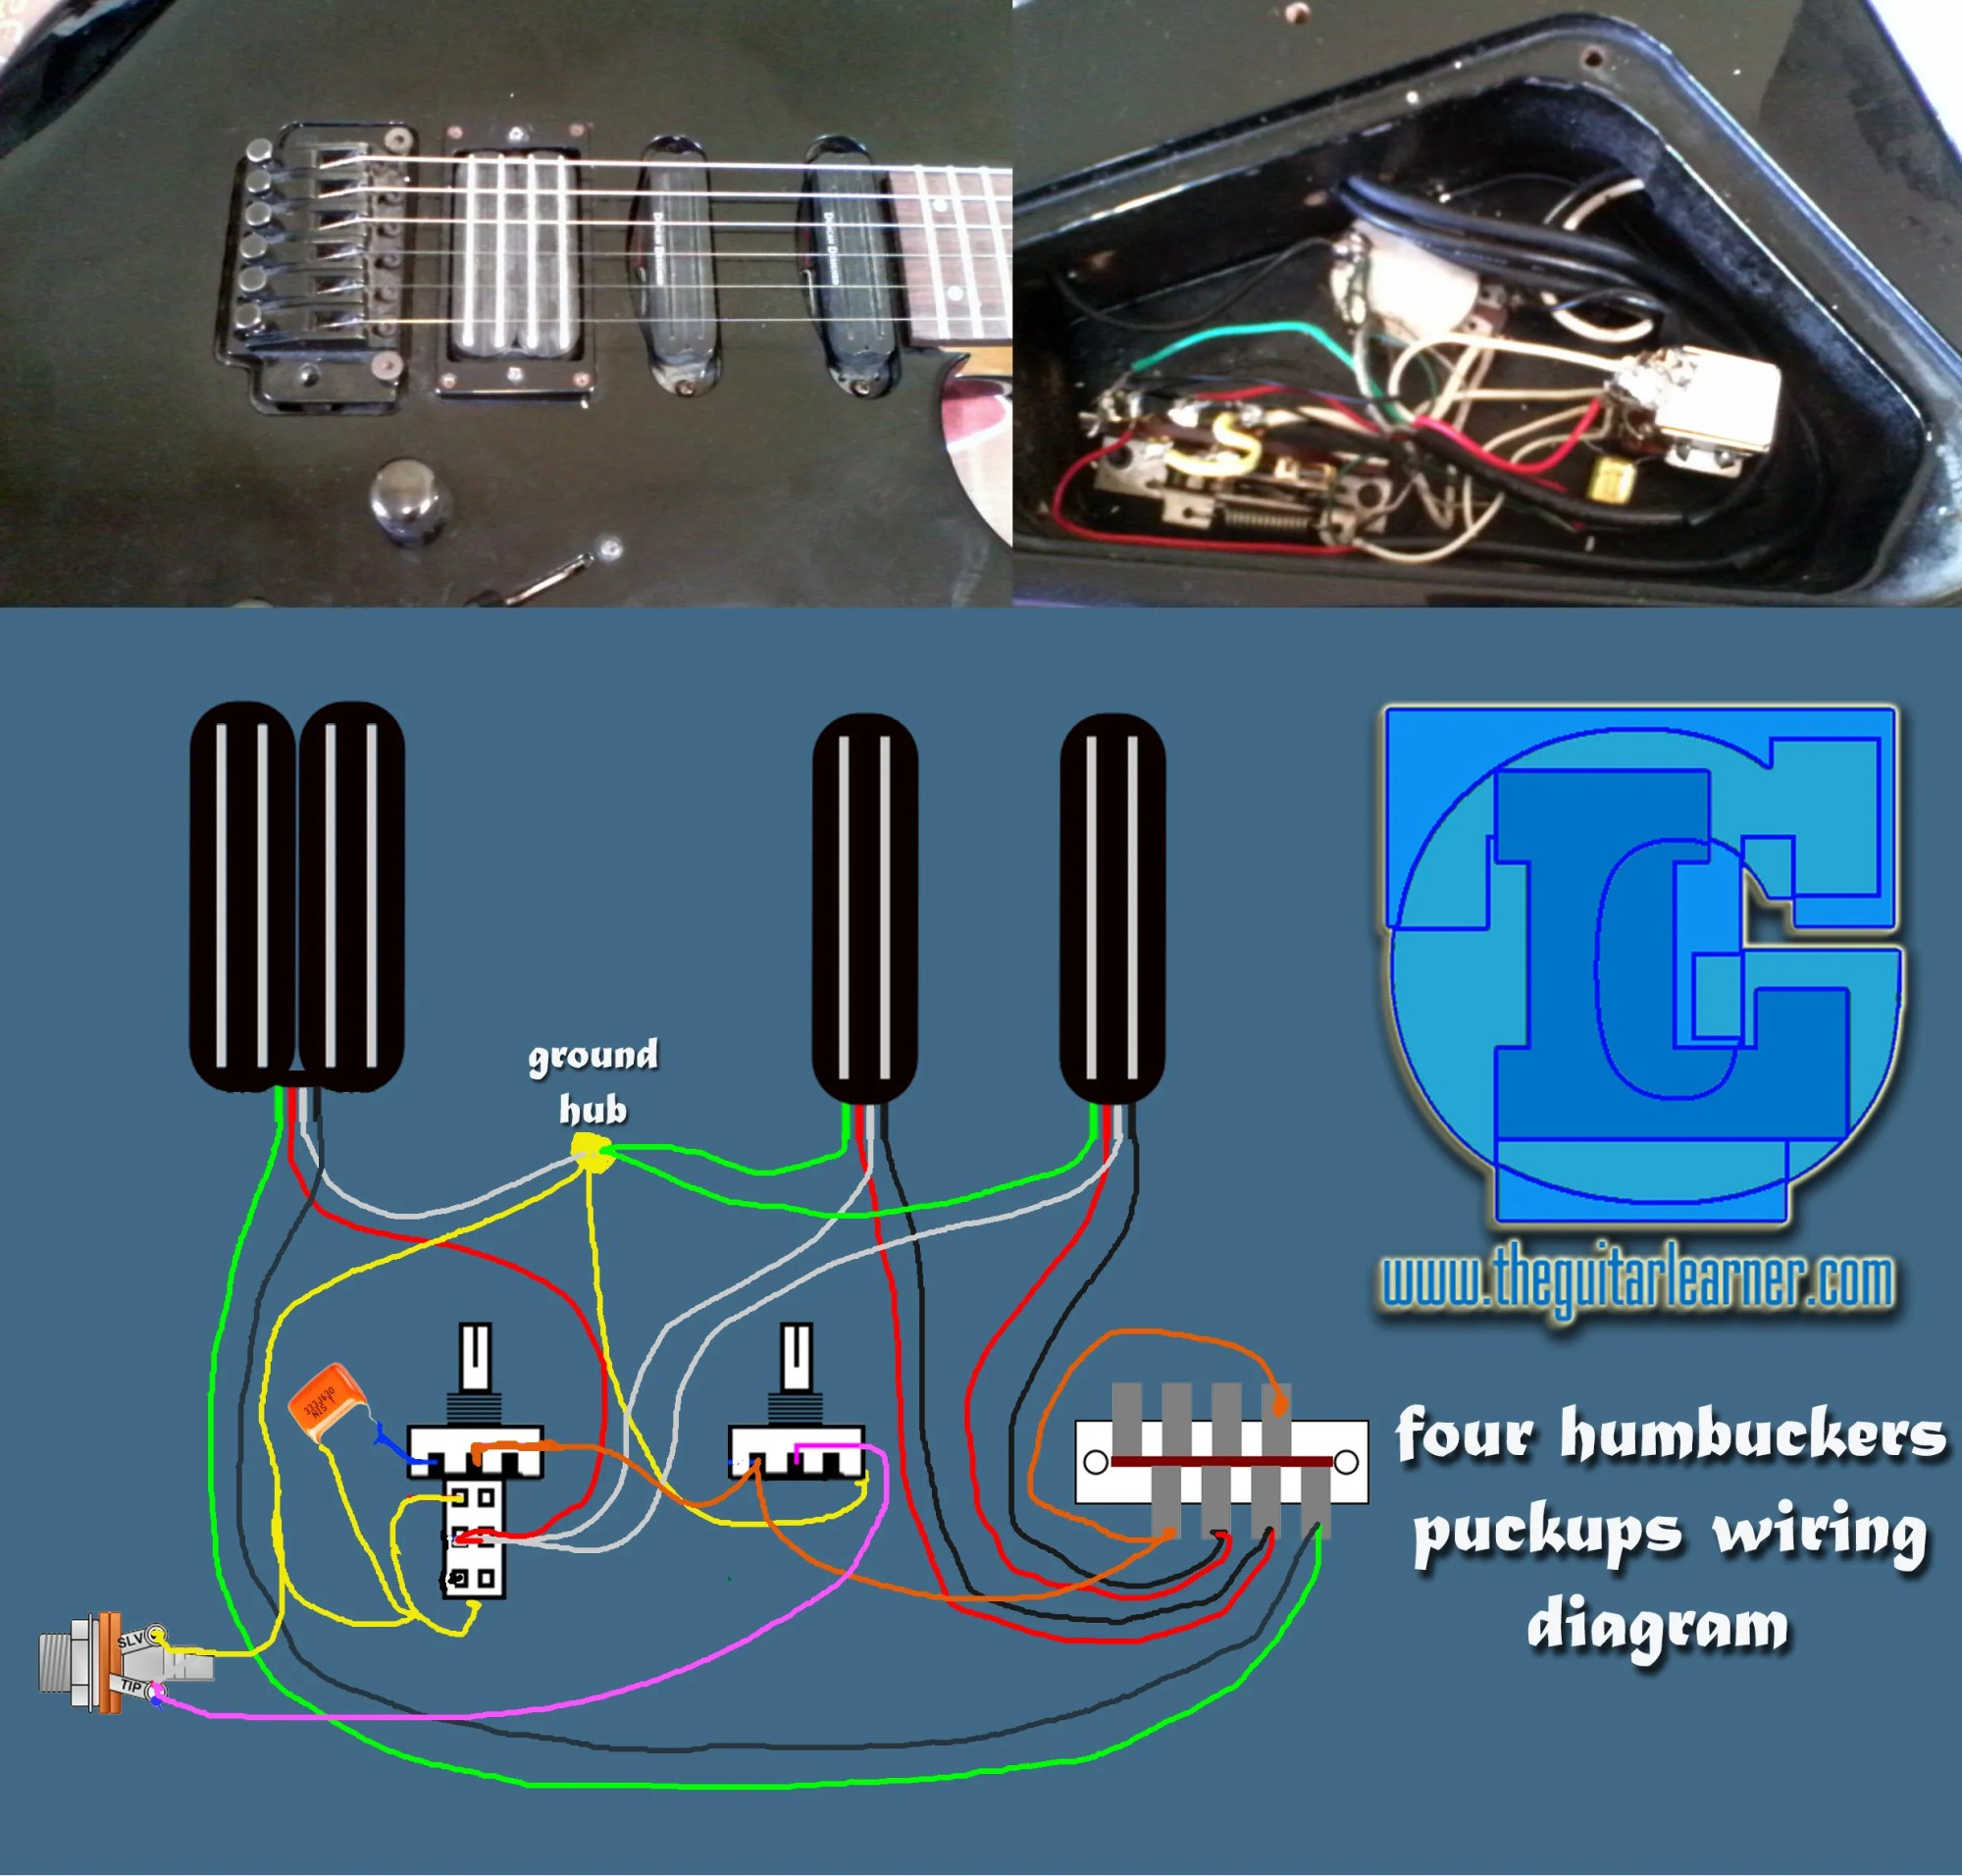 hight resolution of four humbuckers pickup wiring diagram all hotrails and quadrail